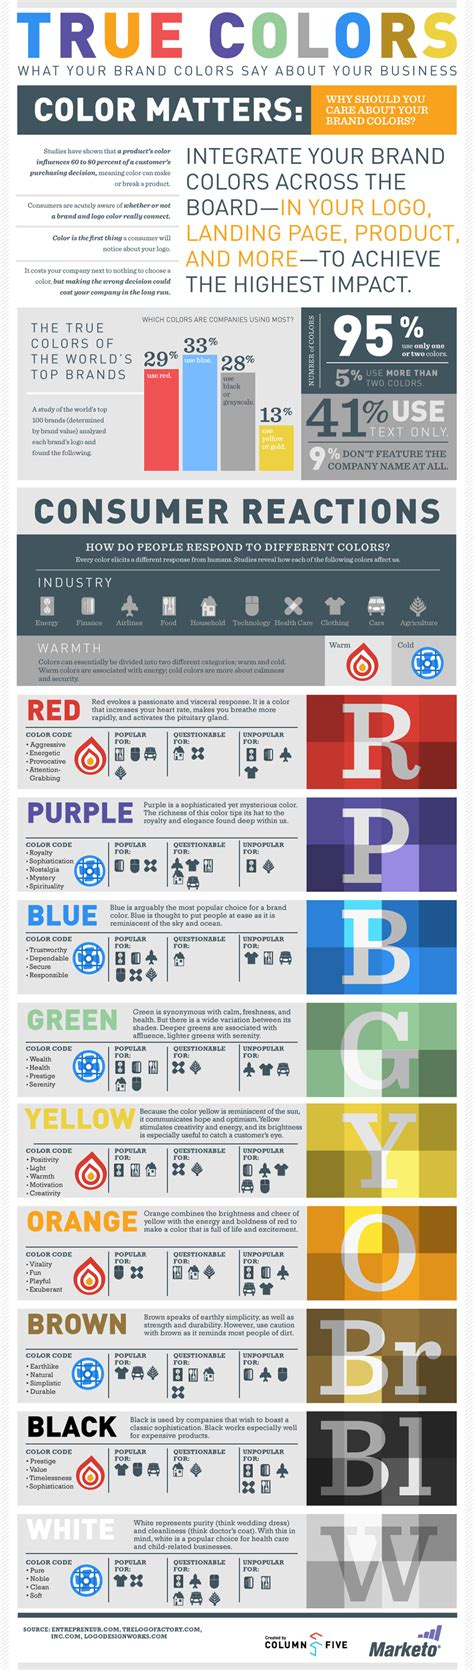 market colors what your brand colors say about your business